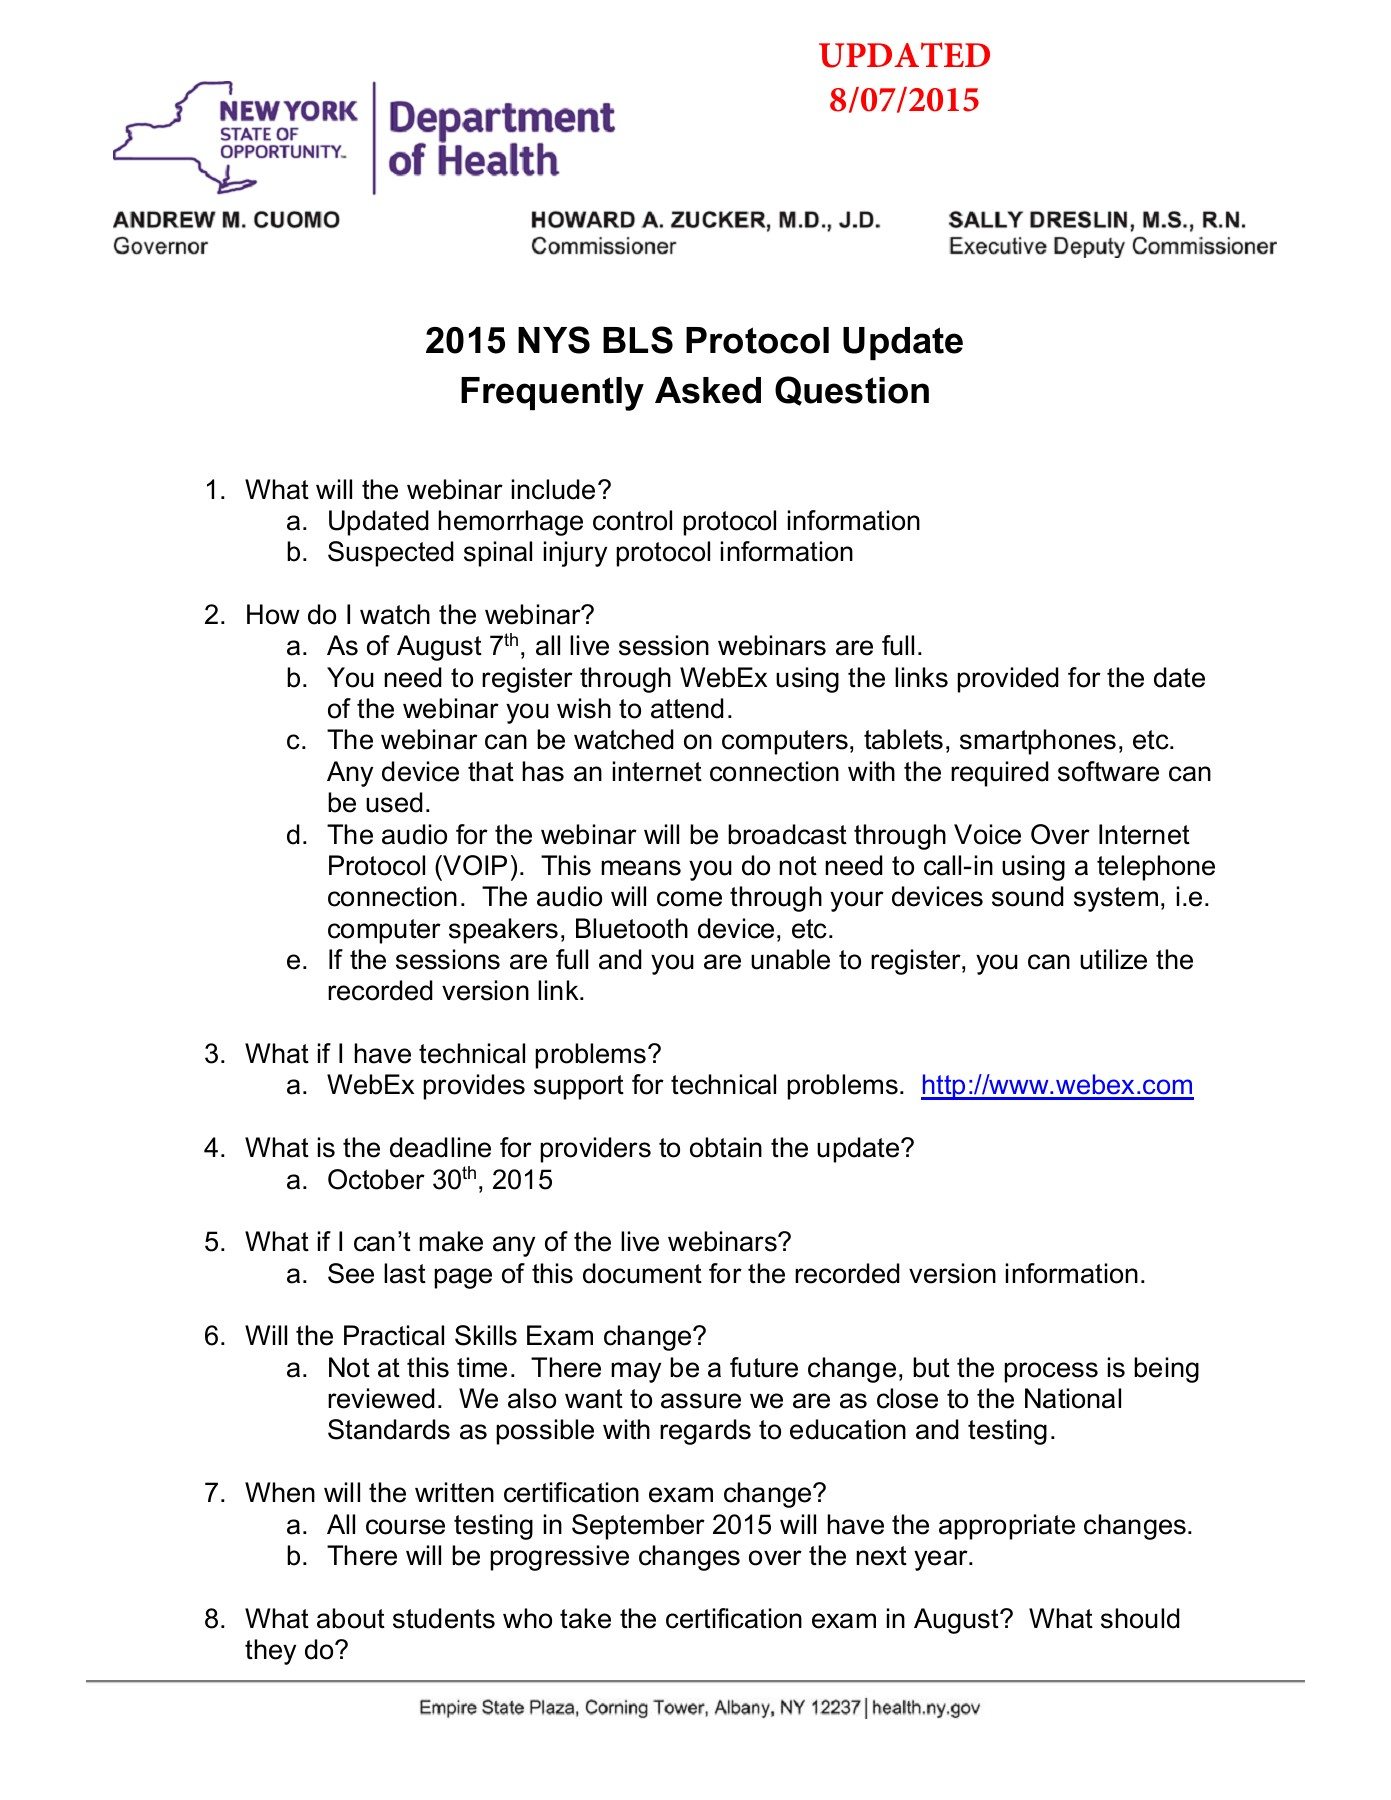 Faq Letter 2015 Nys Bls Protocol Update Nycremsco